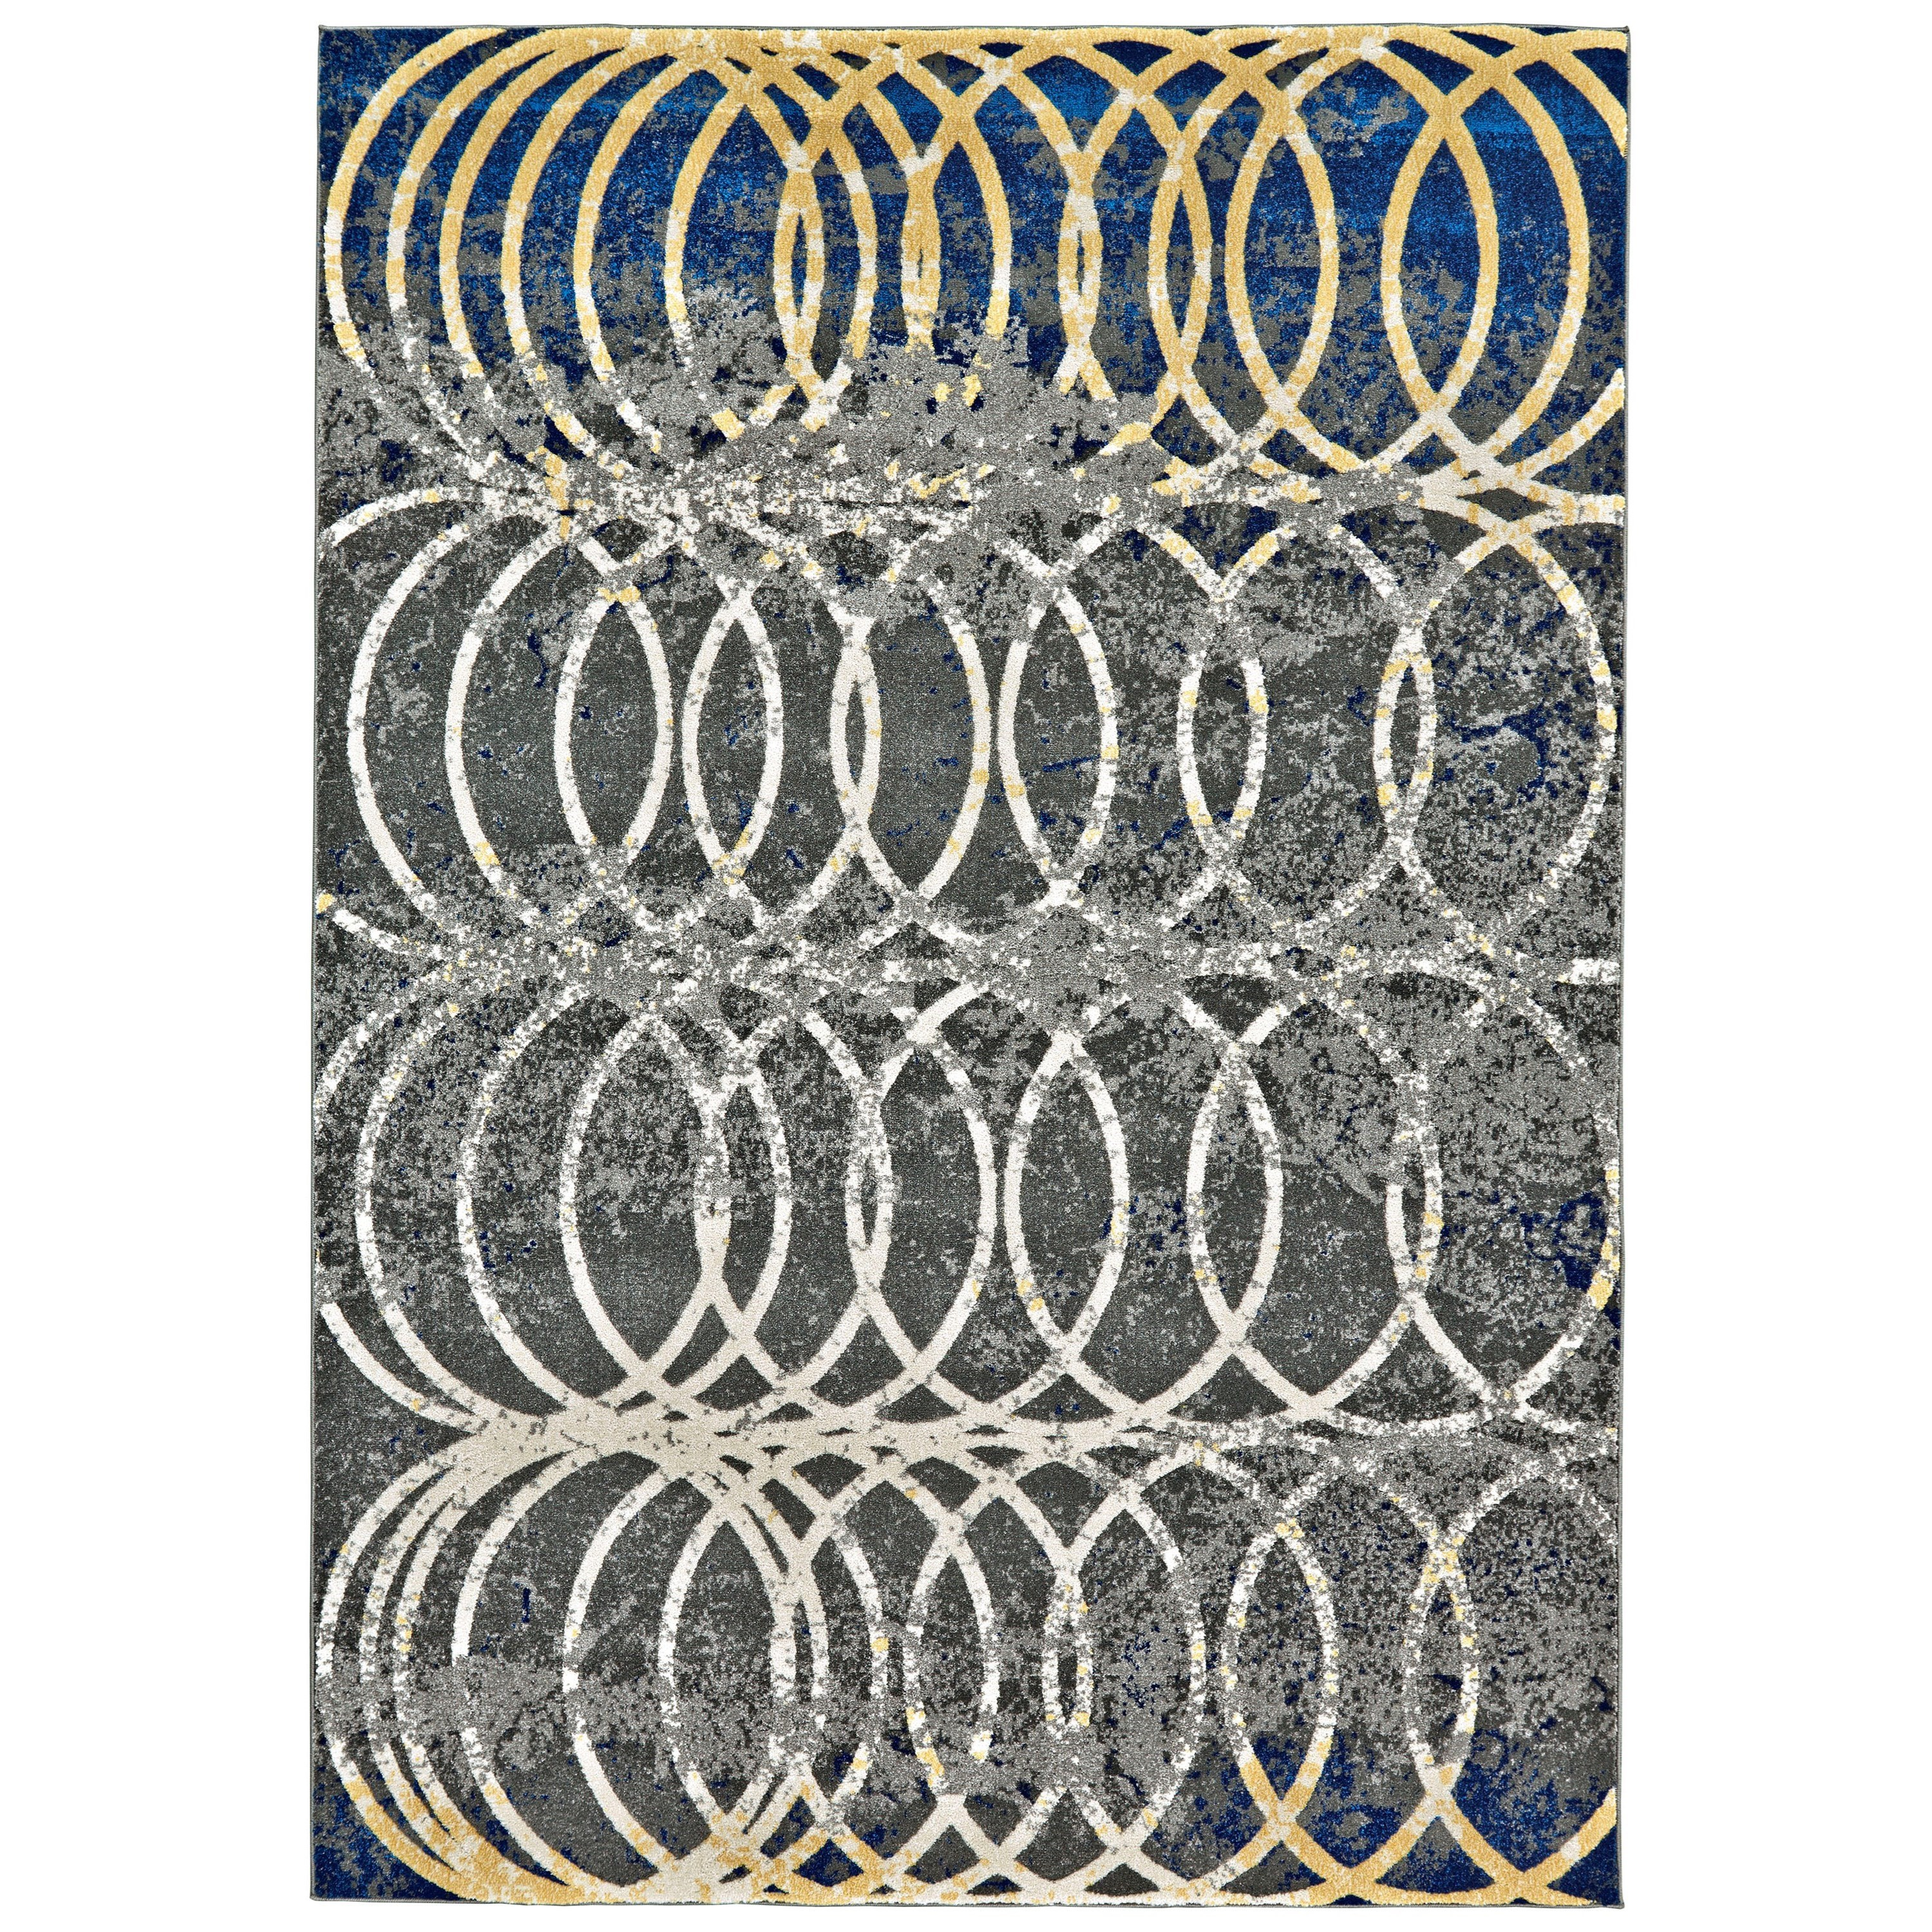 Brixton Smoke 5' x 8' Area Rug by Feizy Rugs at Sprintz Furniture